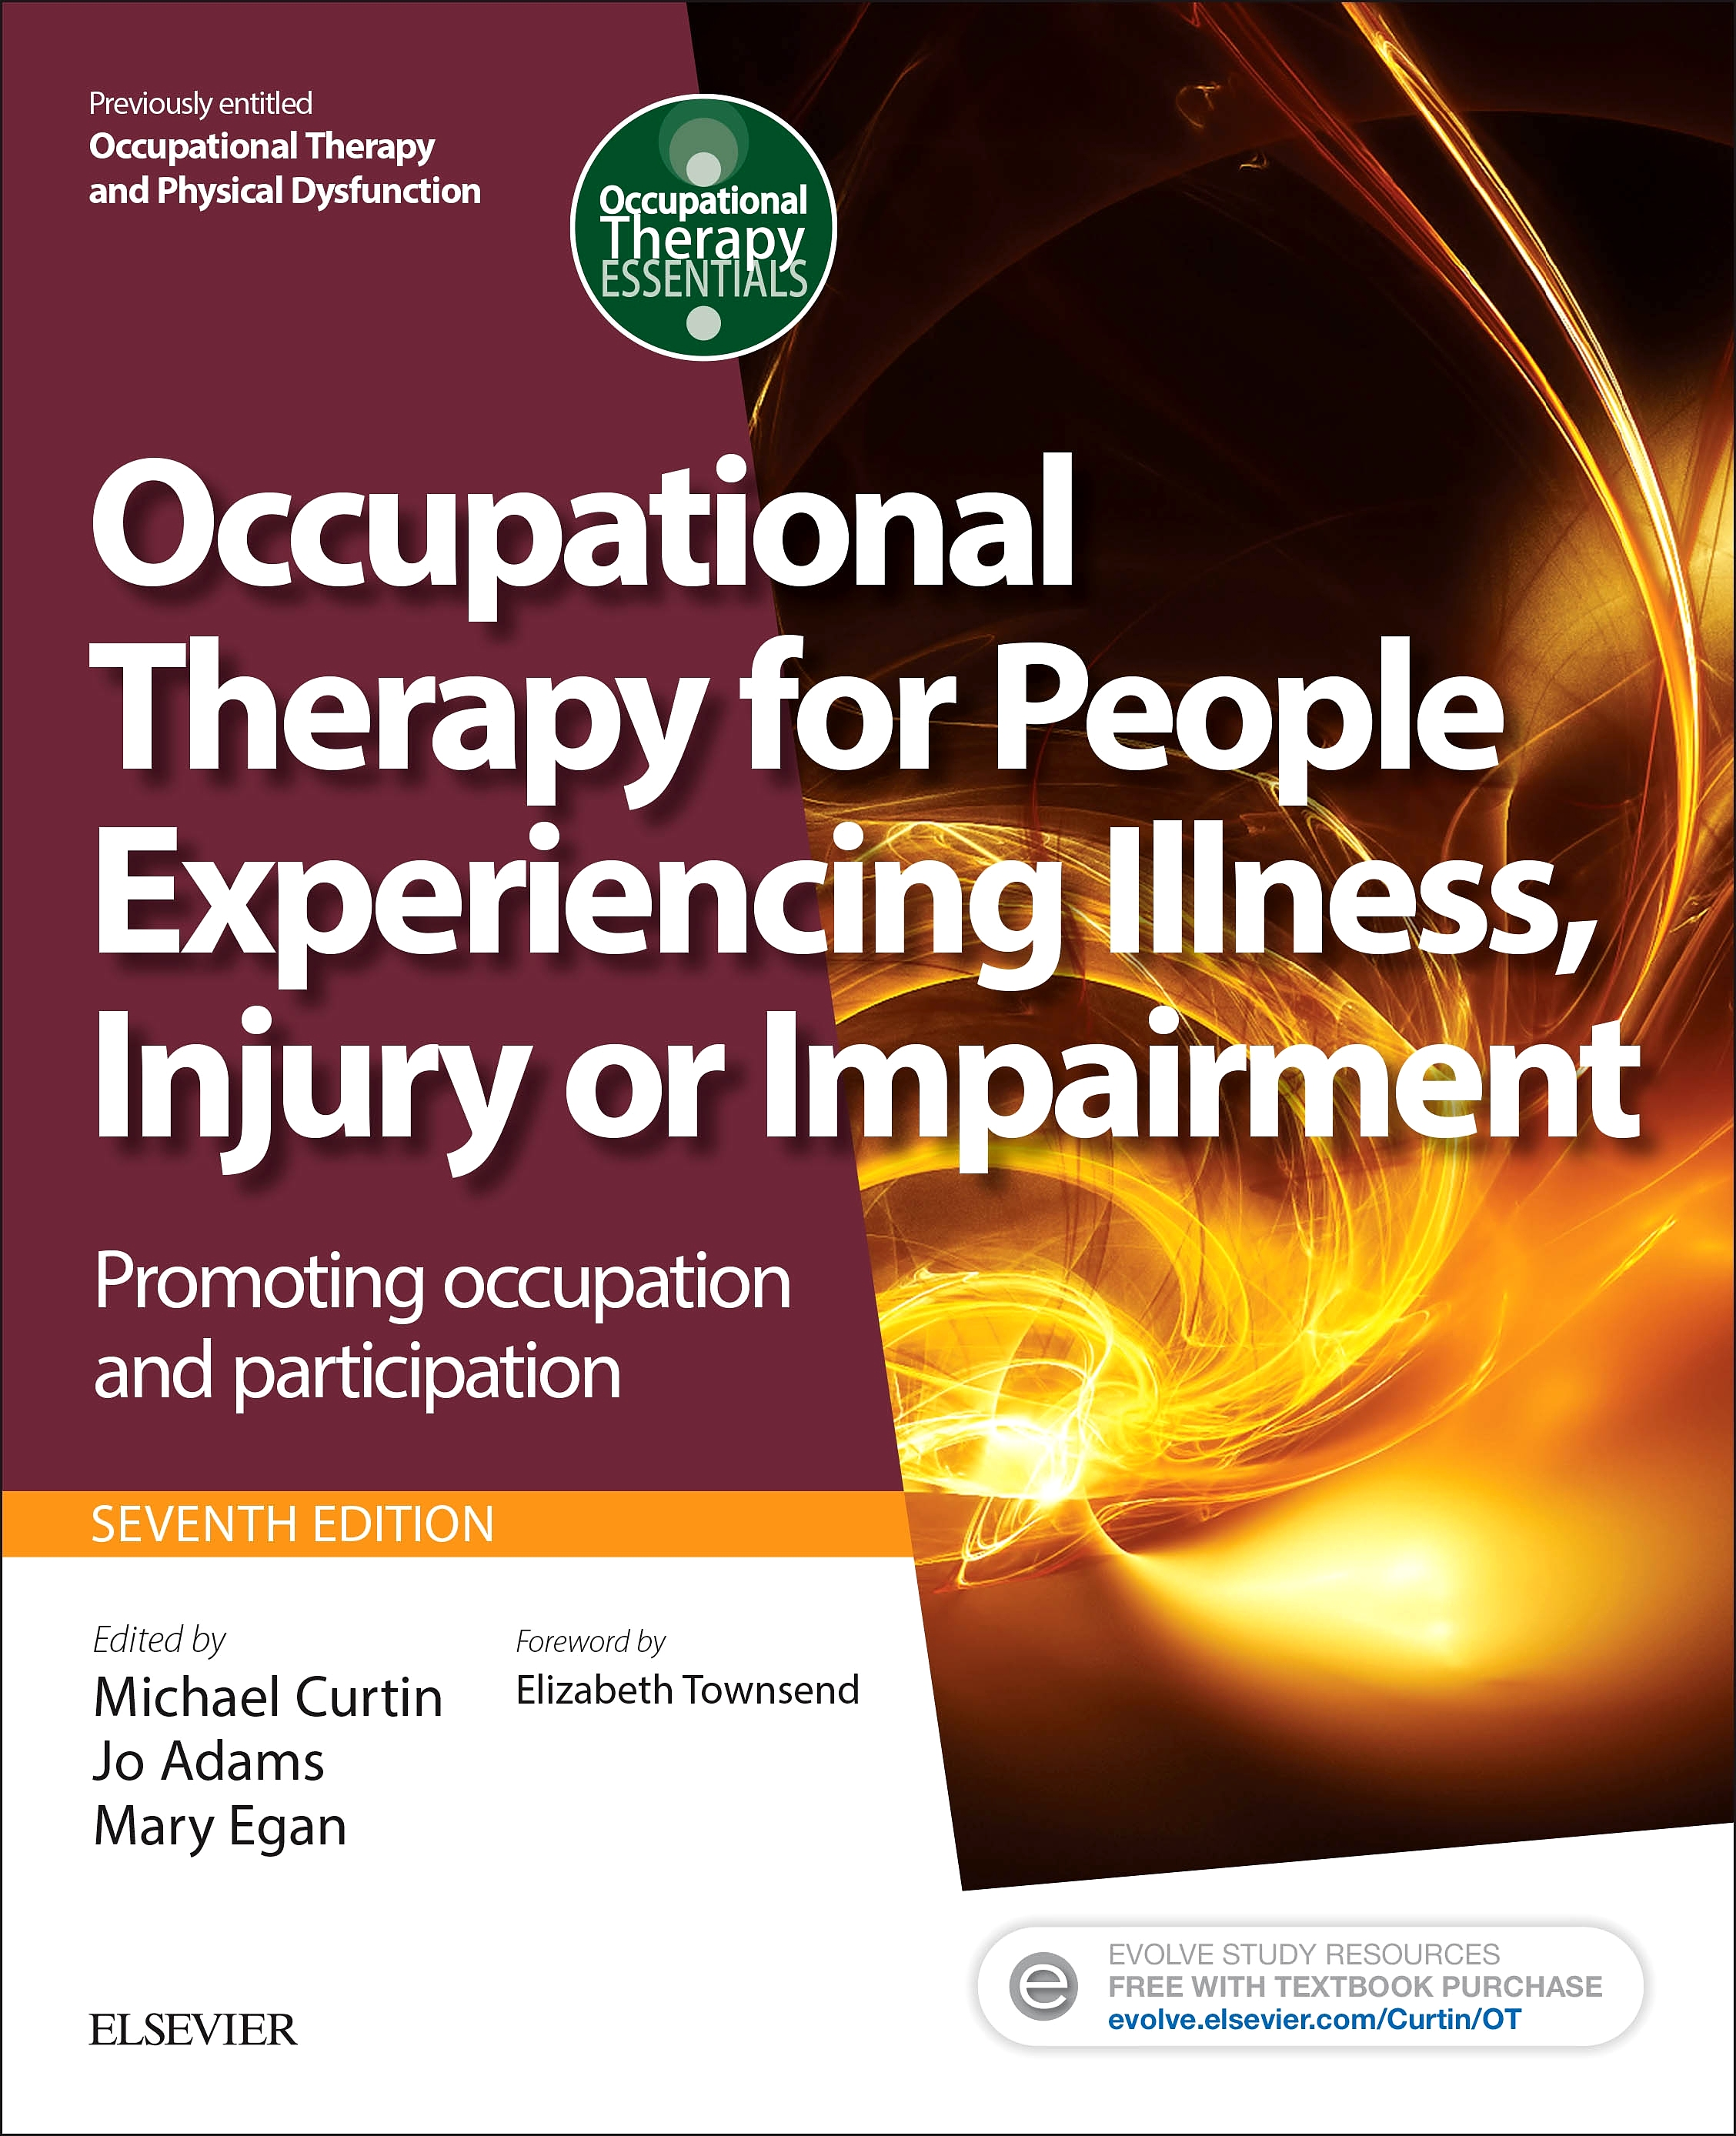 Evolve Resources for Occupational Therapy for People Experiencing Illness, Injury or Impairment, 7th Edition